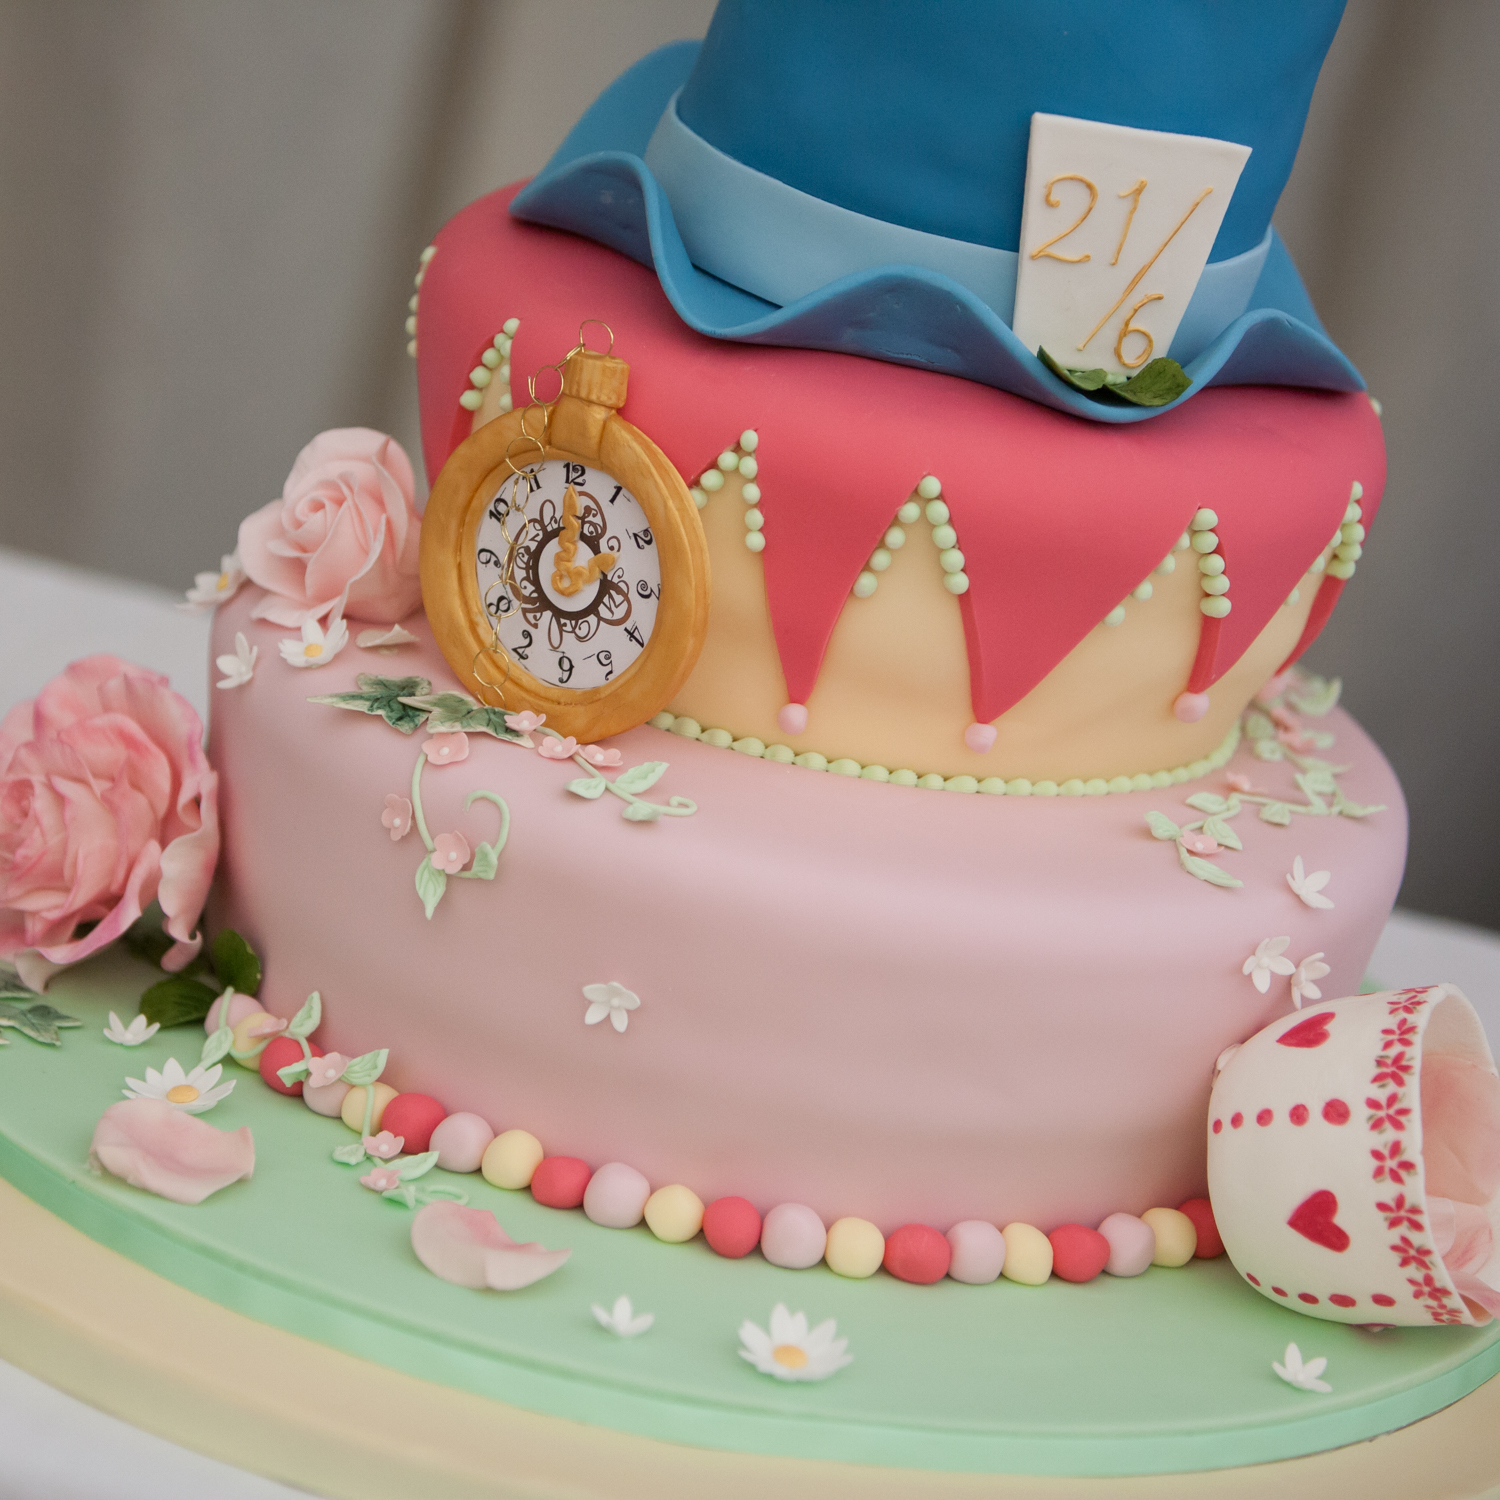 PICTORIAL_BERWICK_WEDDING_ALICE_WONDERLAND_MAD_HATTERS_FARM-9328.jpg